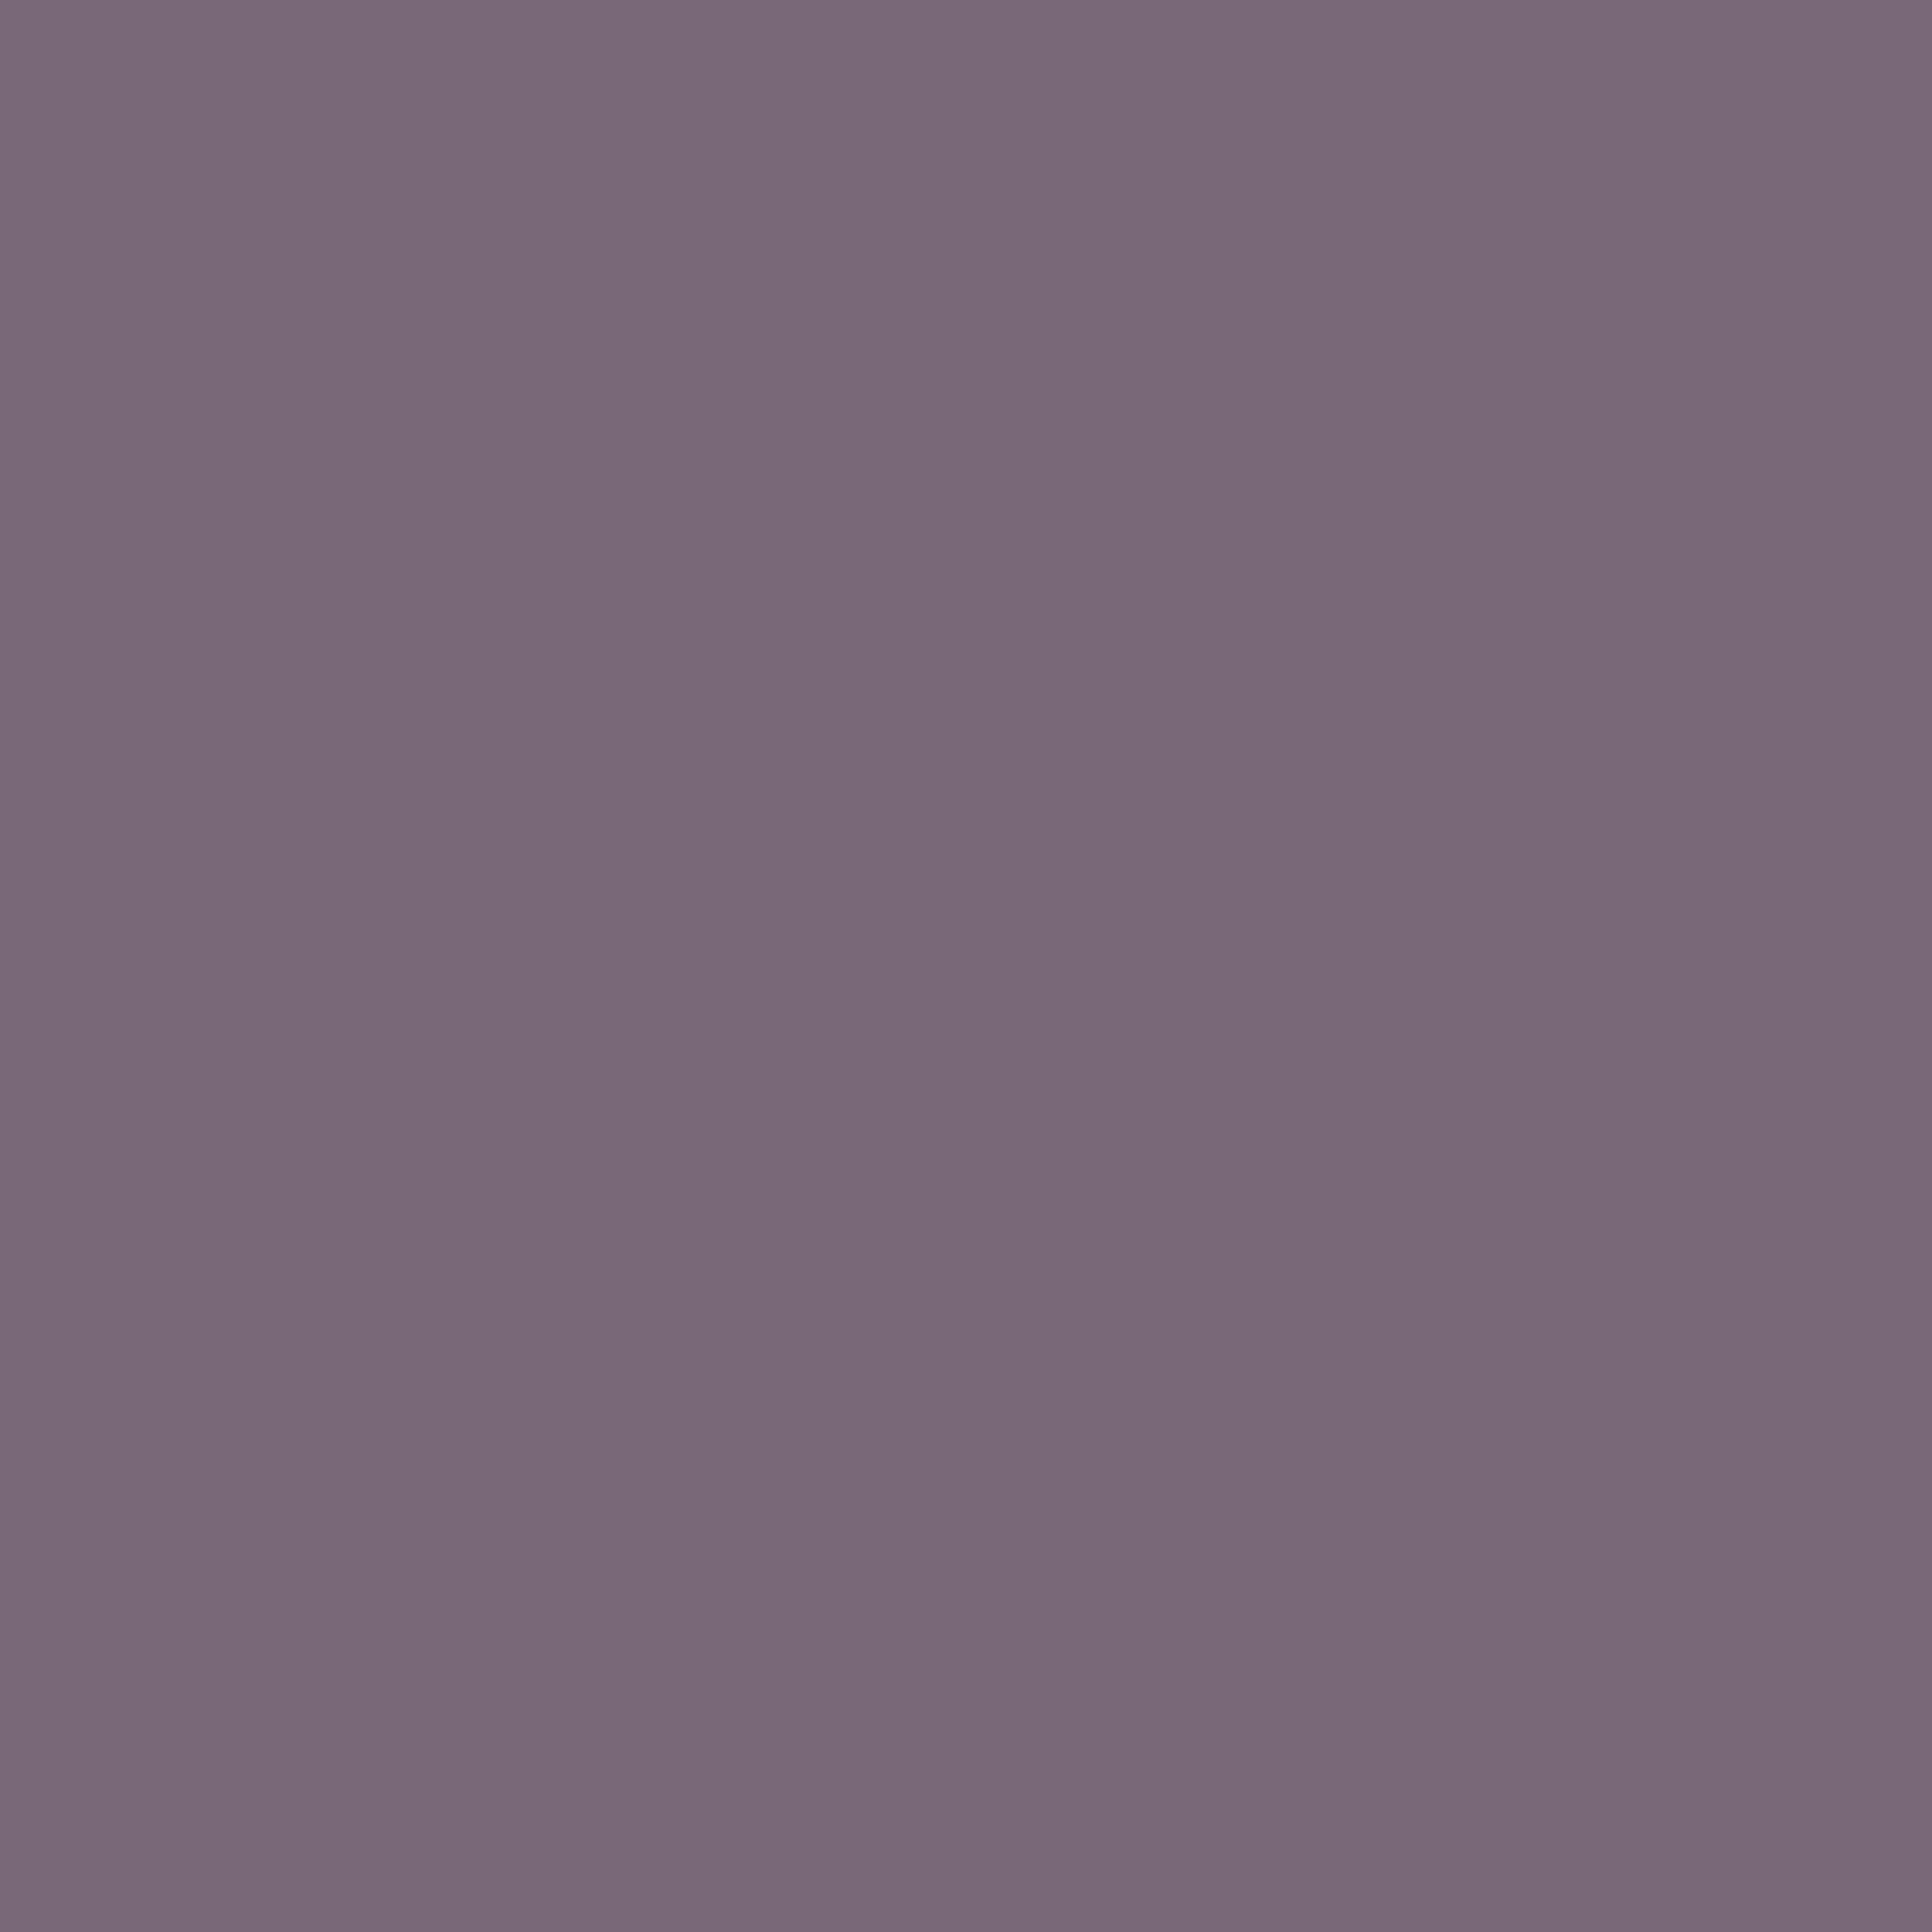 2048x2048 Old Lavender Solid Color Background